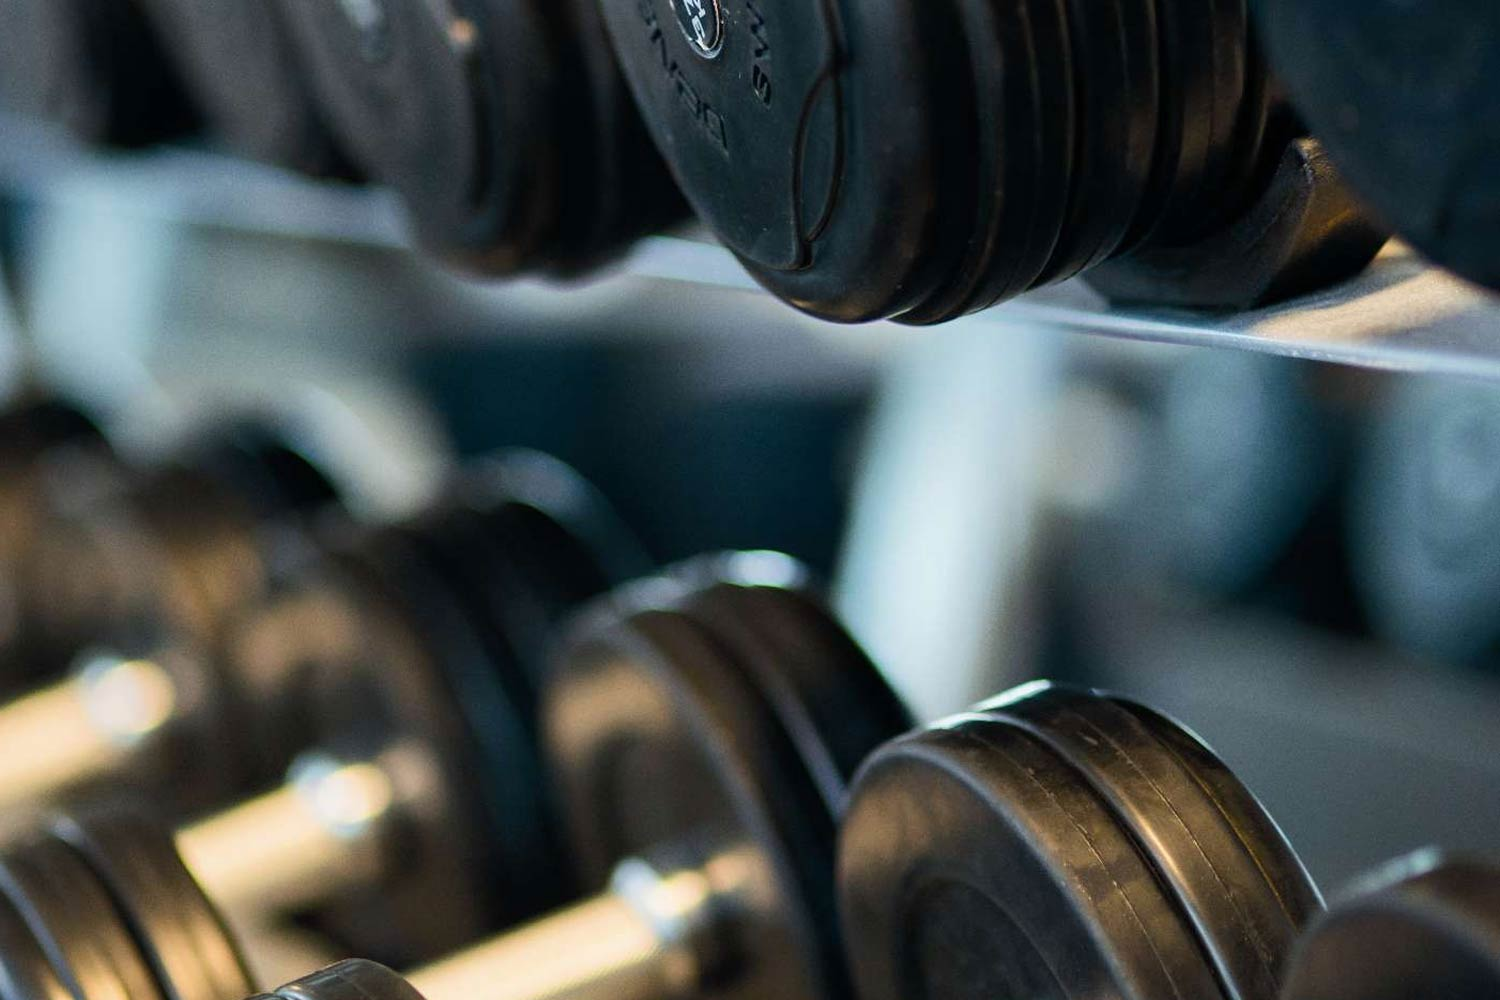 5 things you are doing wrong at the gym and how to fix them